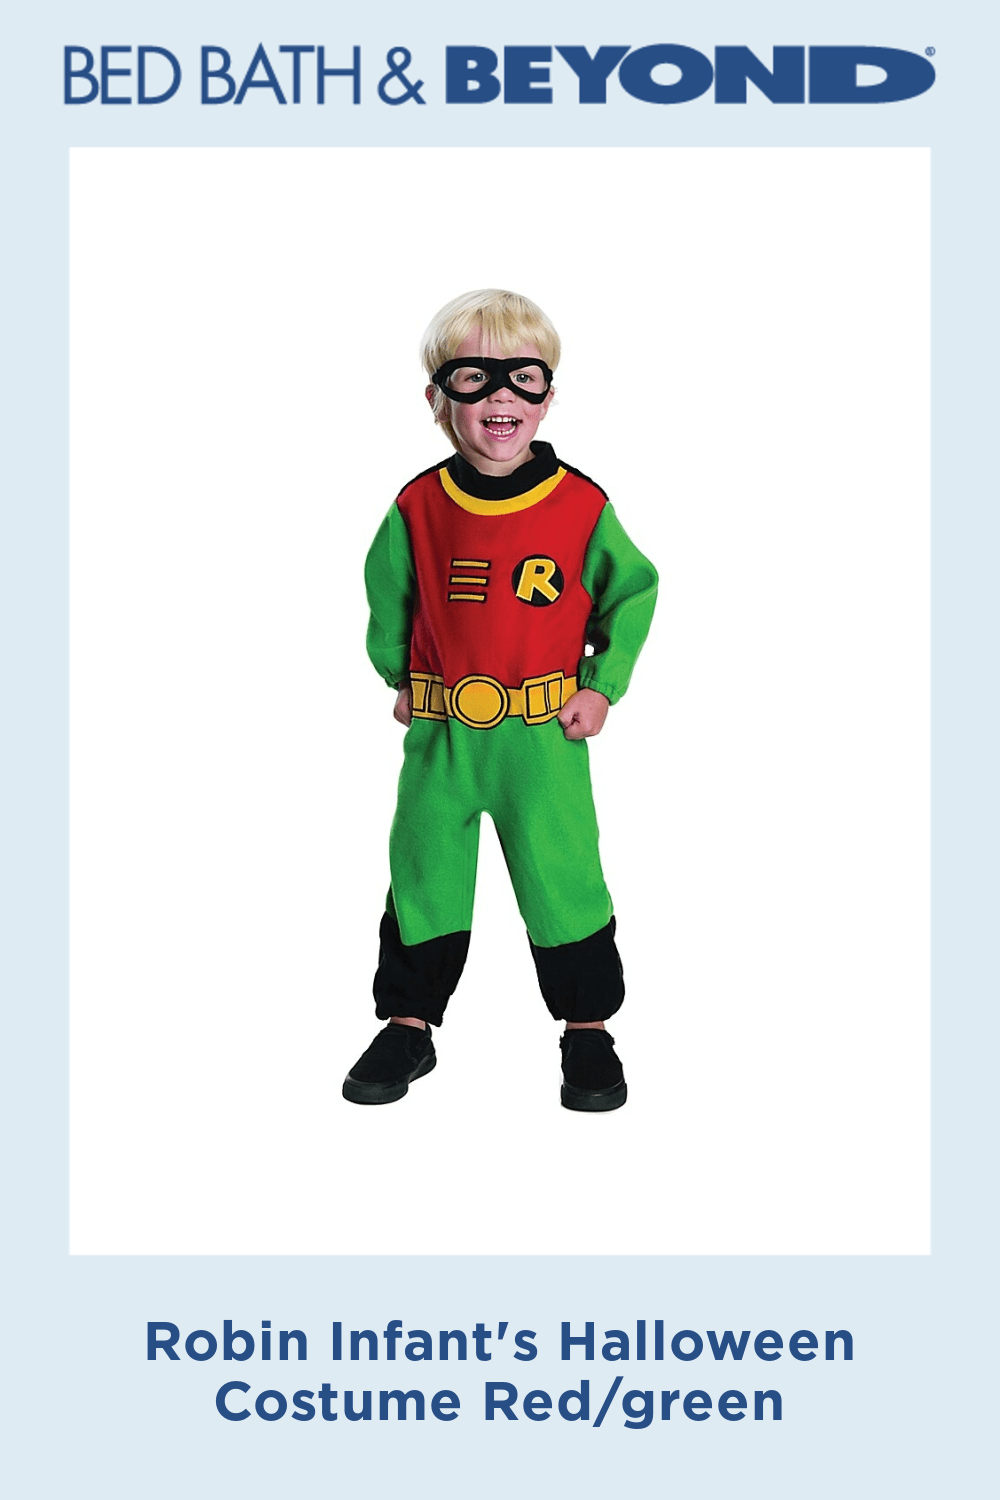 Robin Infant's Halloween Costume Red/green